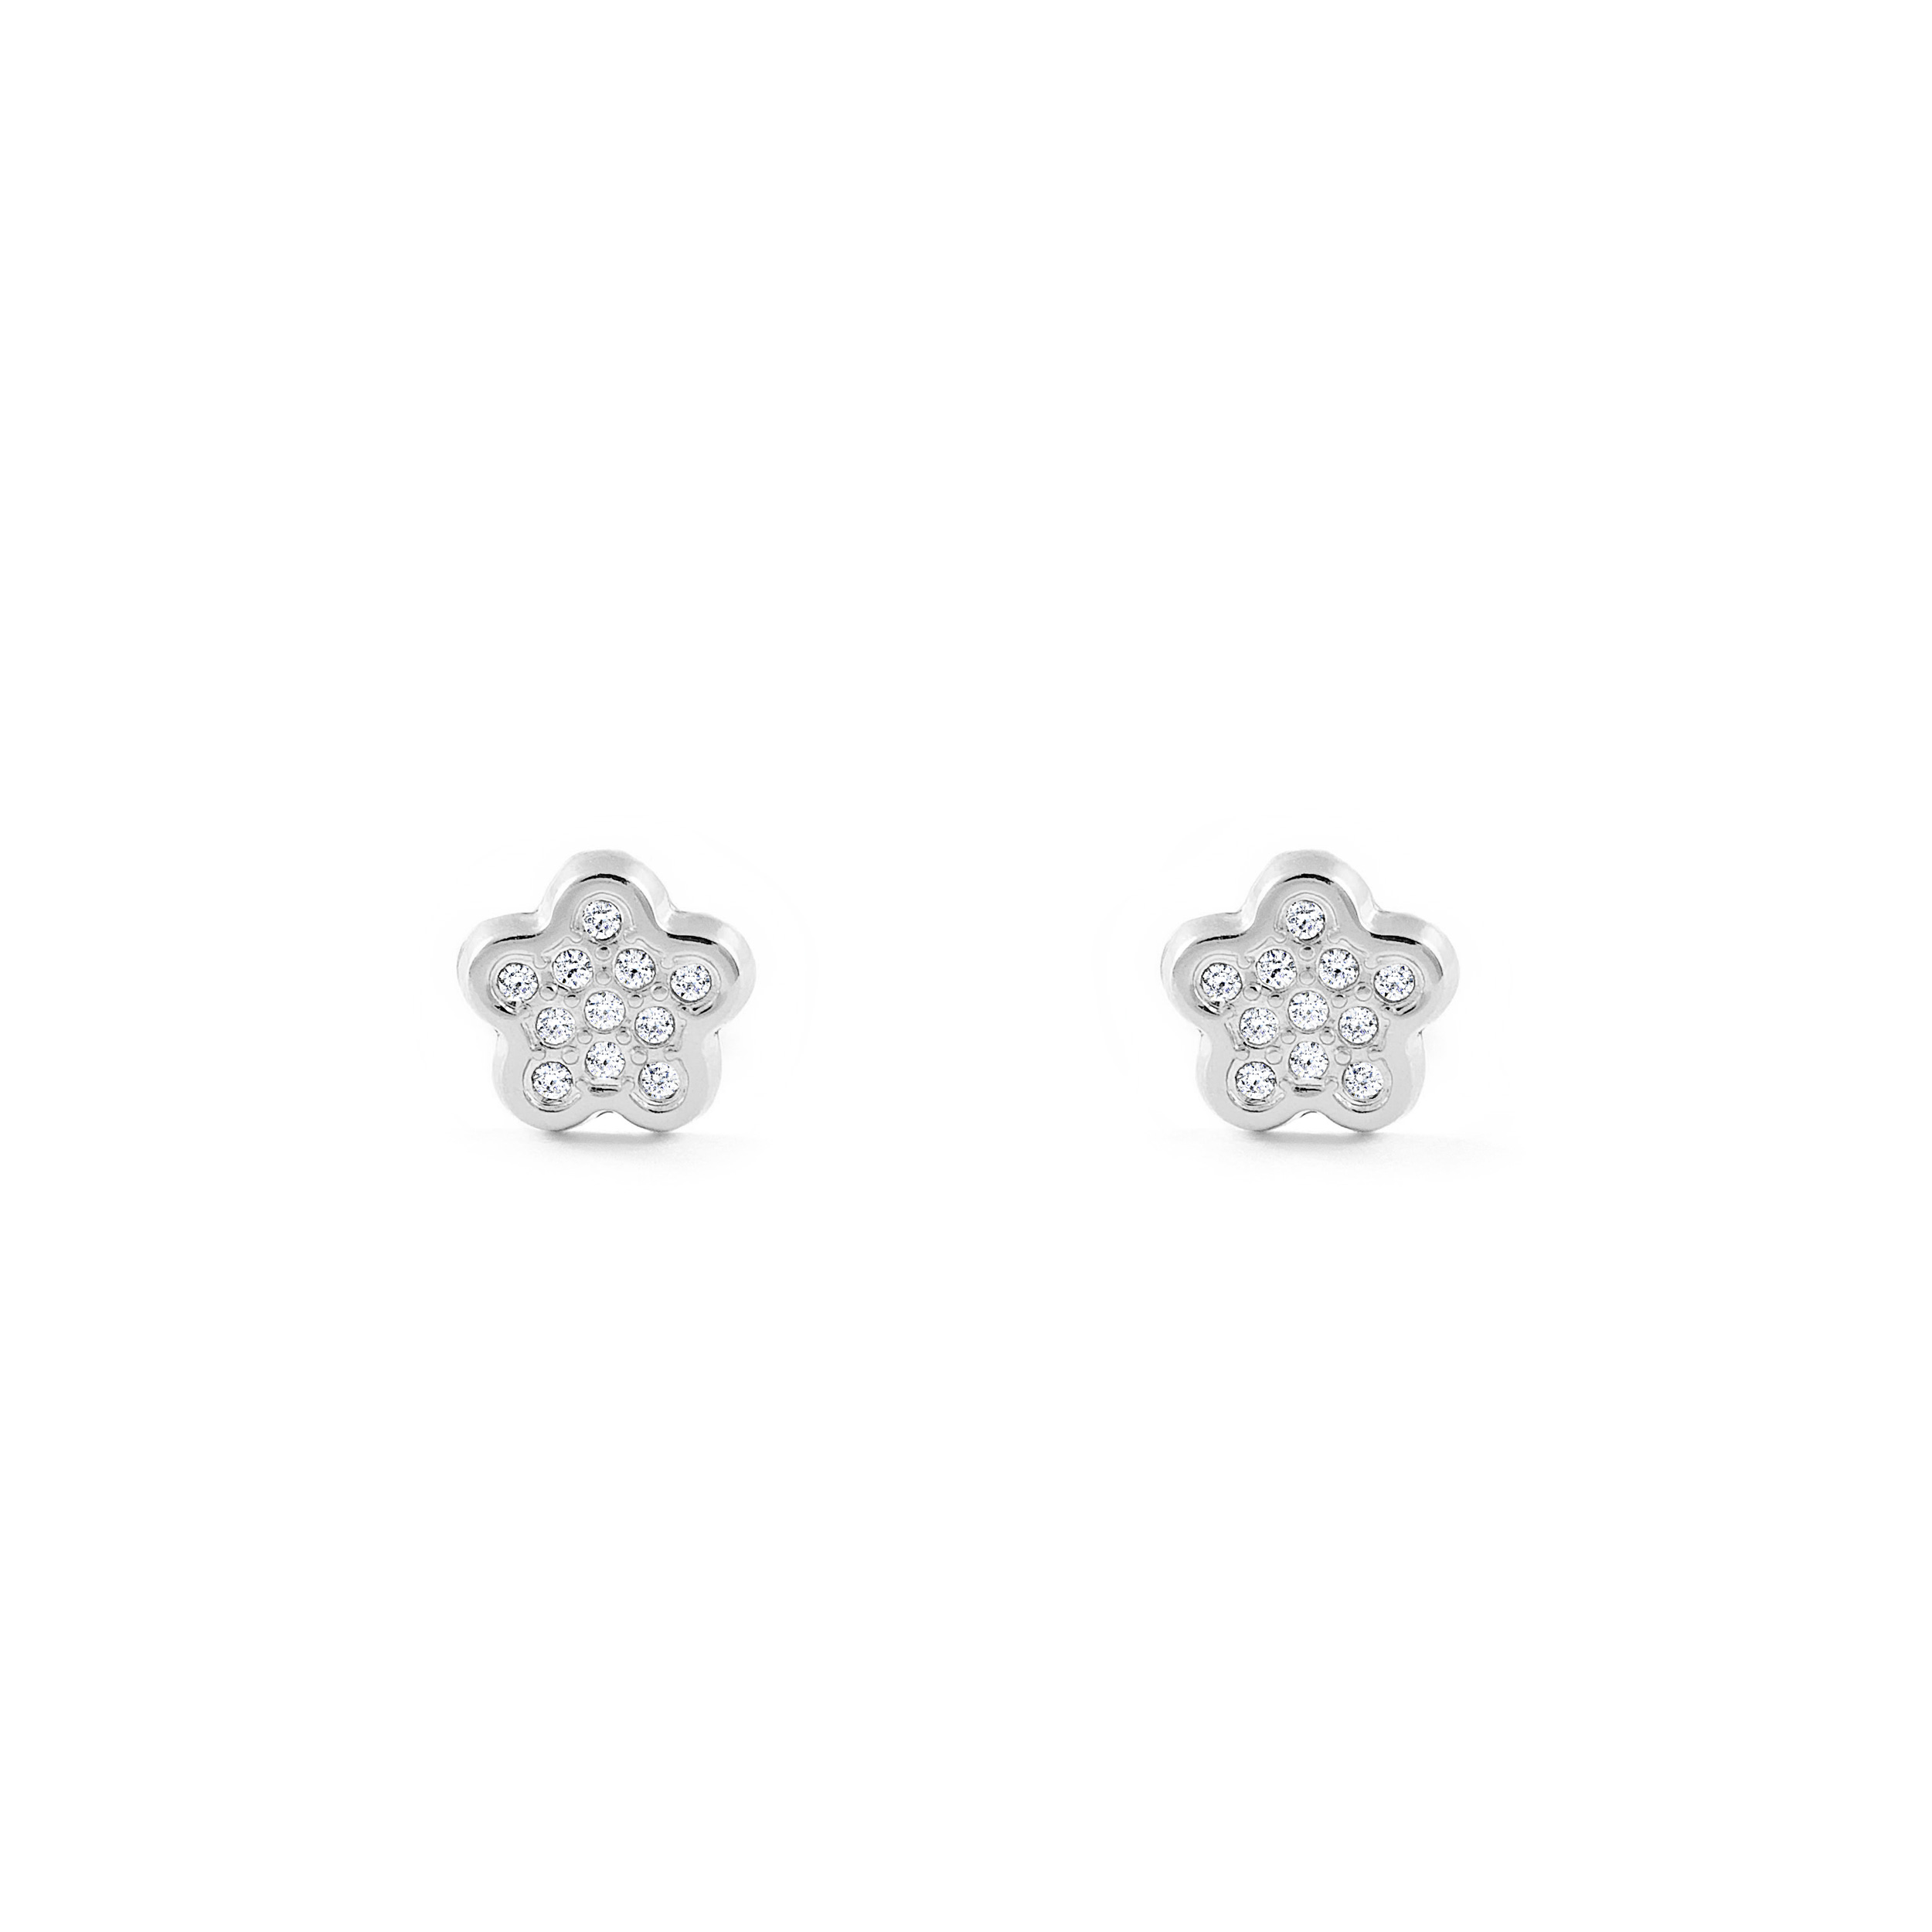 Details About 18ct White Gold Flower Baby Earrings T1897p